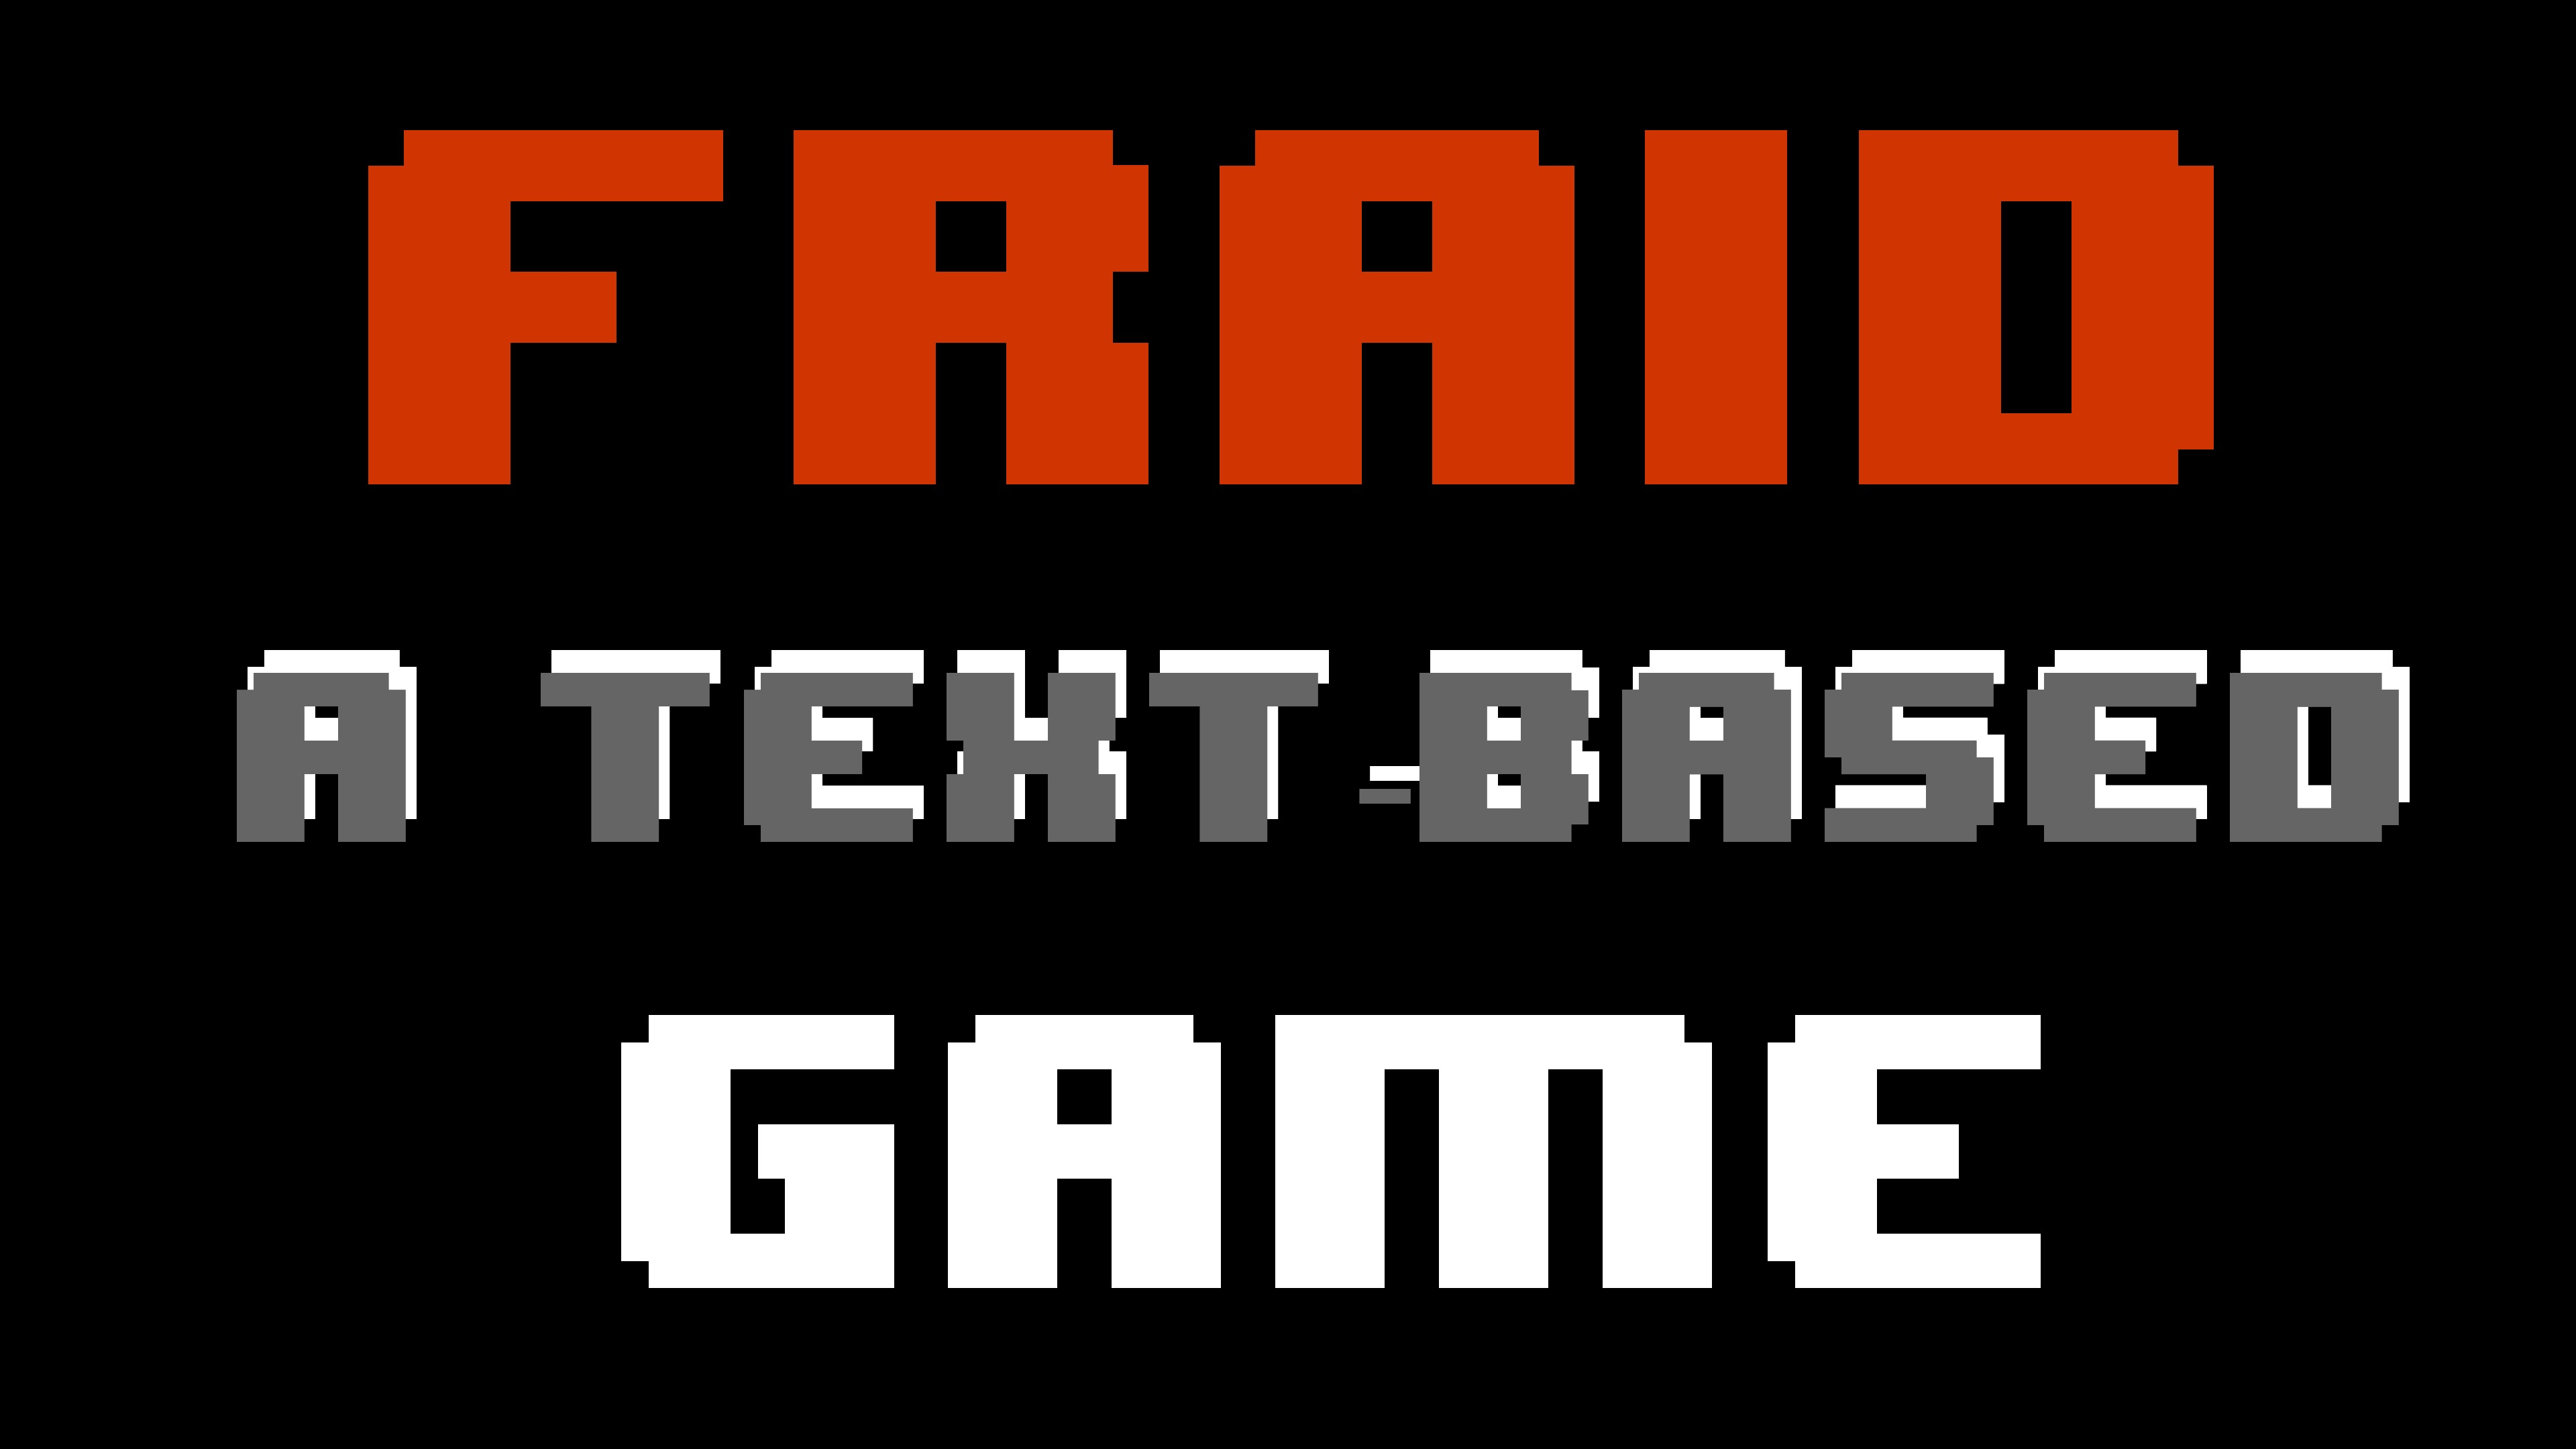 FRAID: A TEXT-BASED GAME